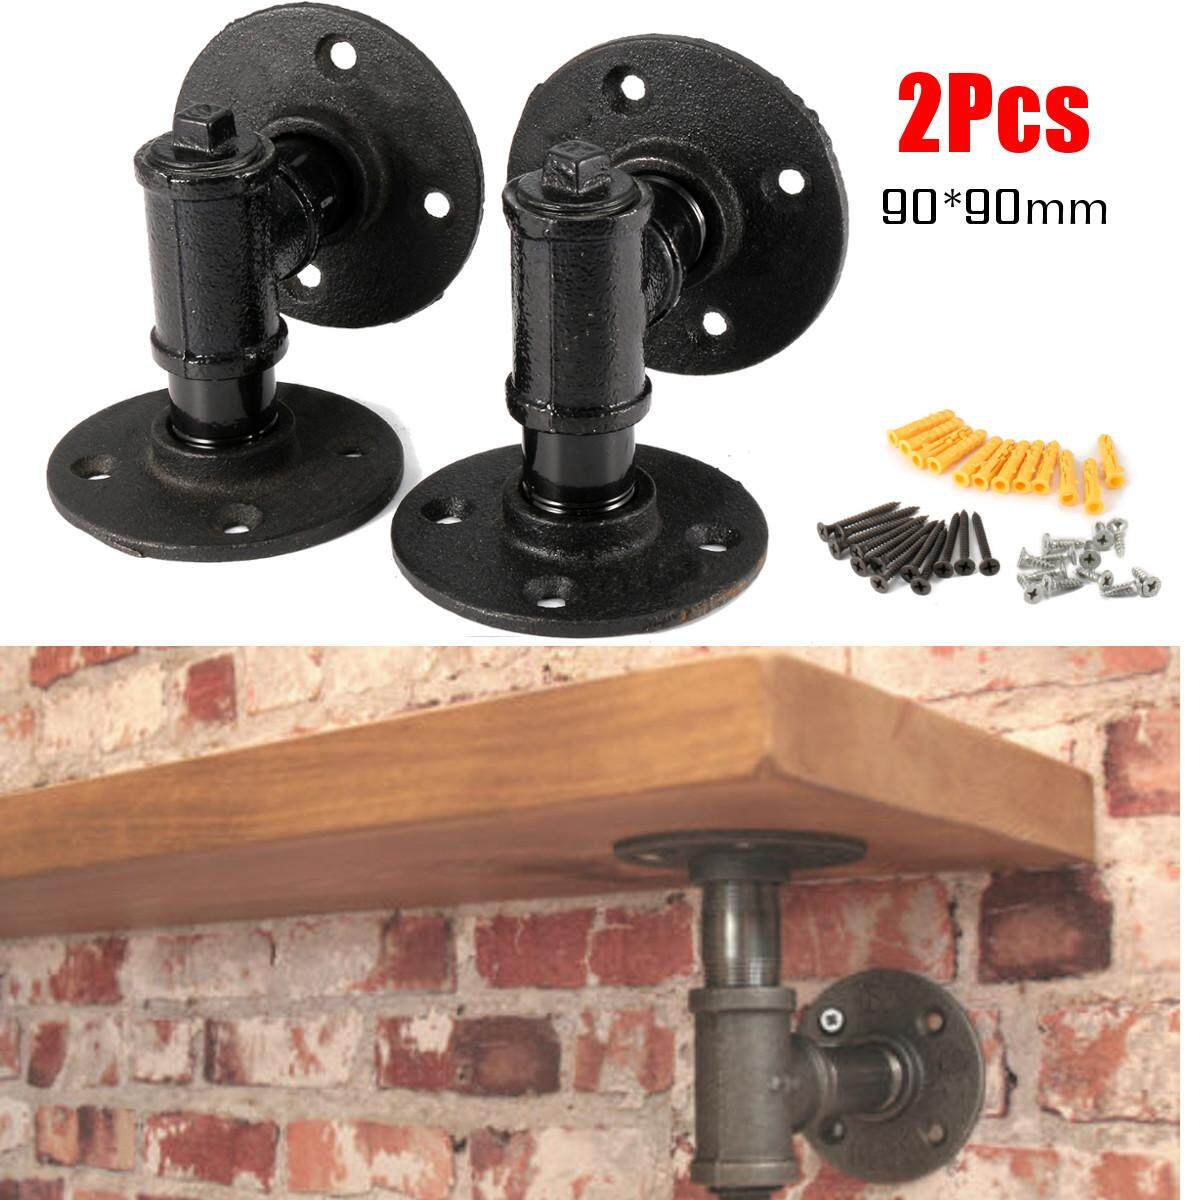 2x Retro Industrial Iron 3/4 Pipe Shelf Bracket Holder With Screws DIY Decor